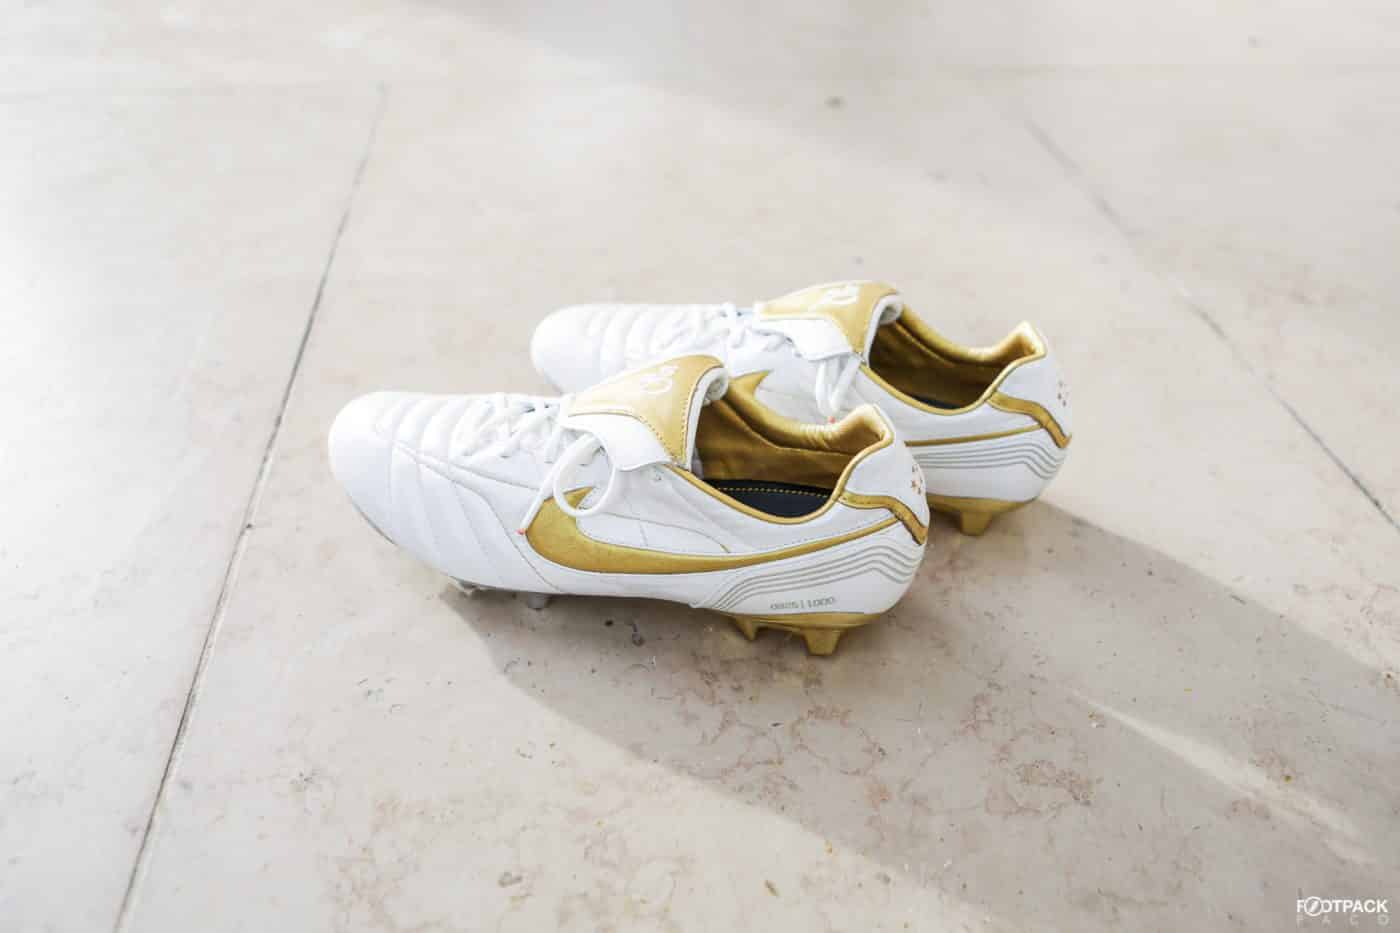 shooting-footpack-nike-tiempo-air-legend-10R-ronaldhino-9